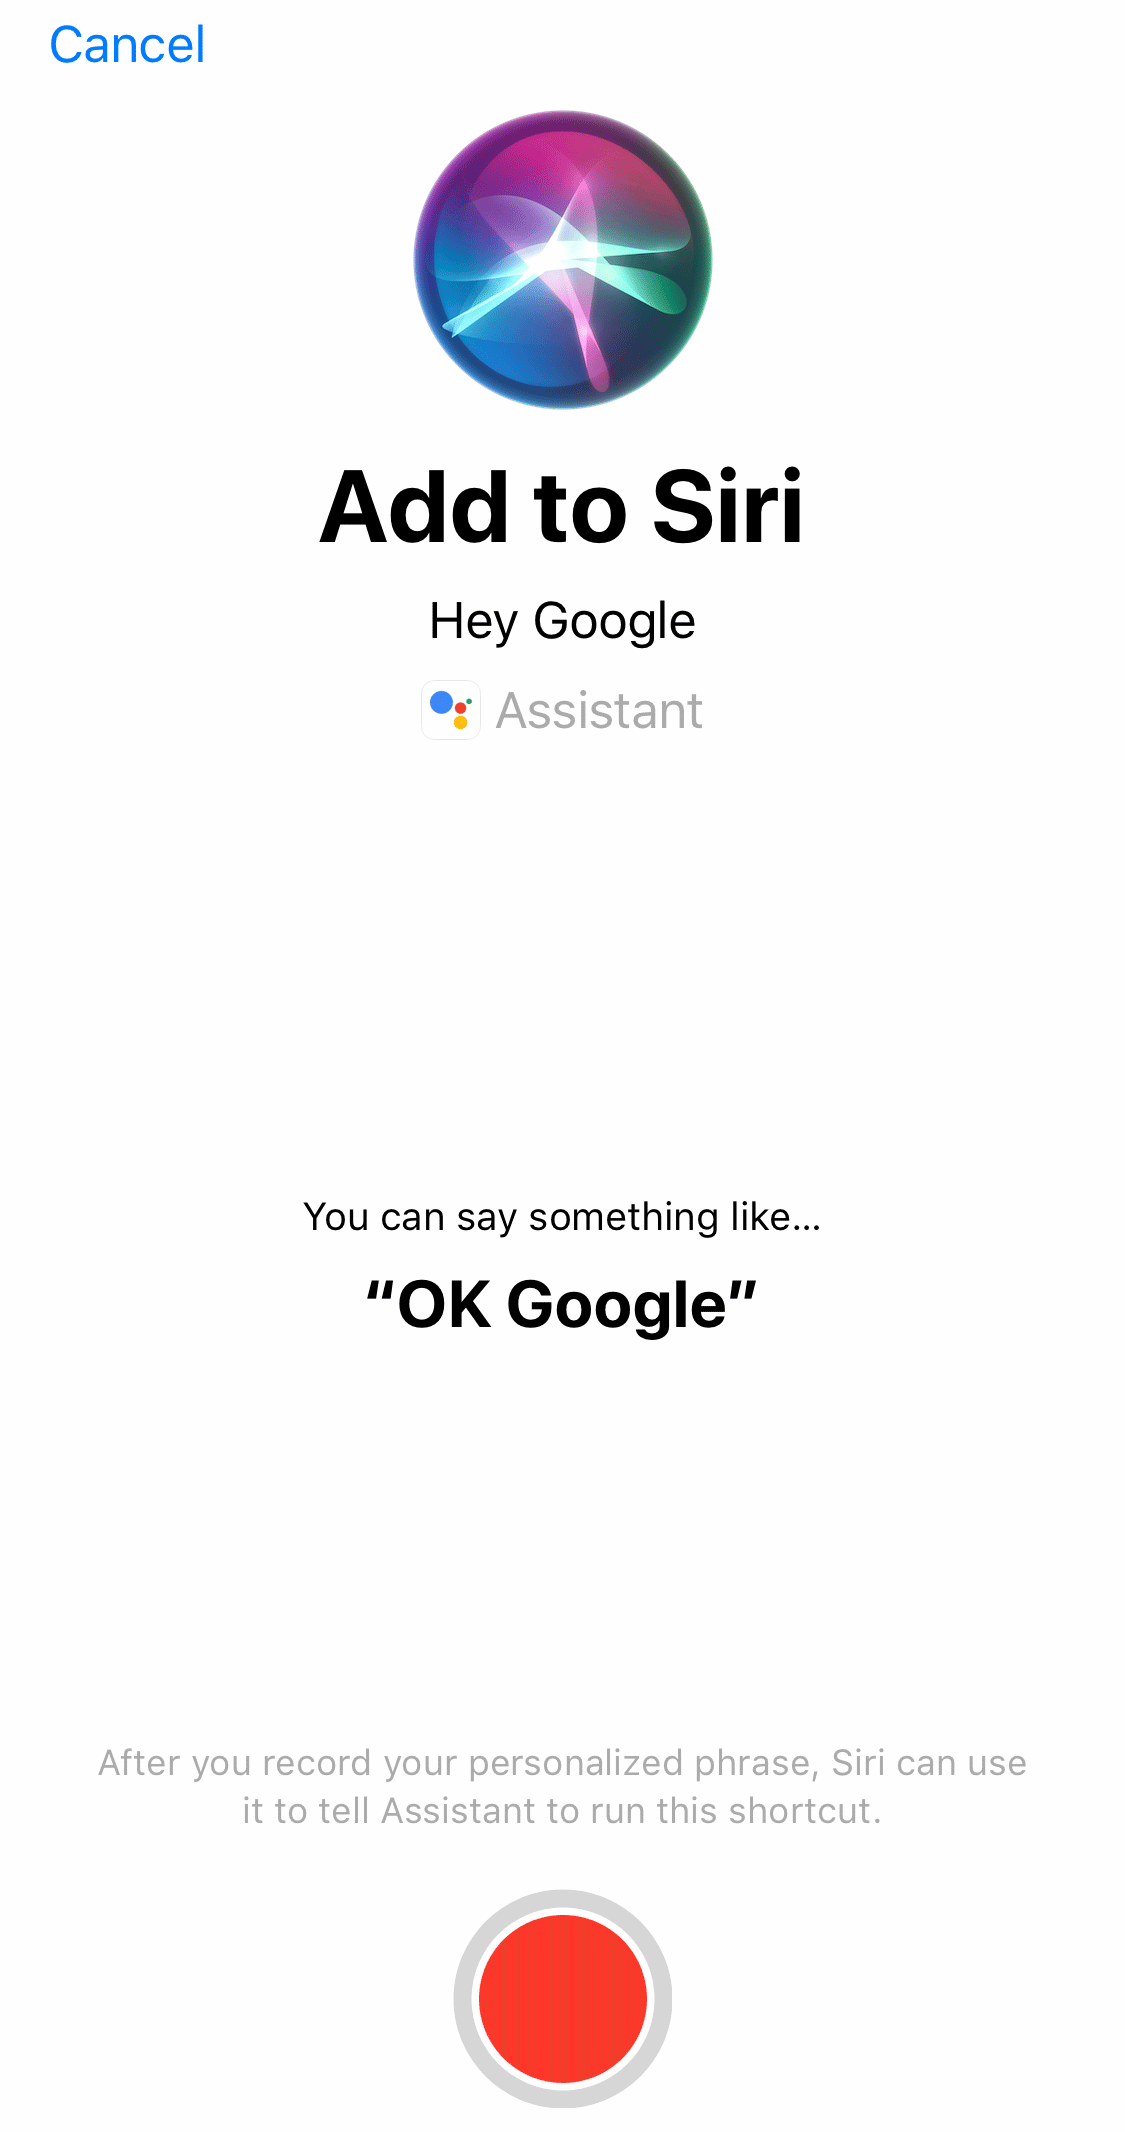 Google Assistant iOS App Adds Siri Shortcut, Making It Easier For